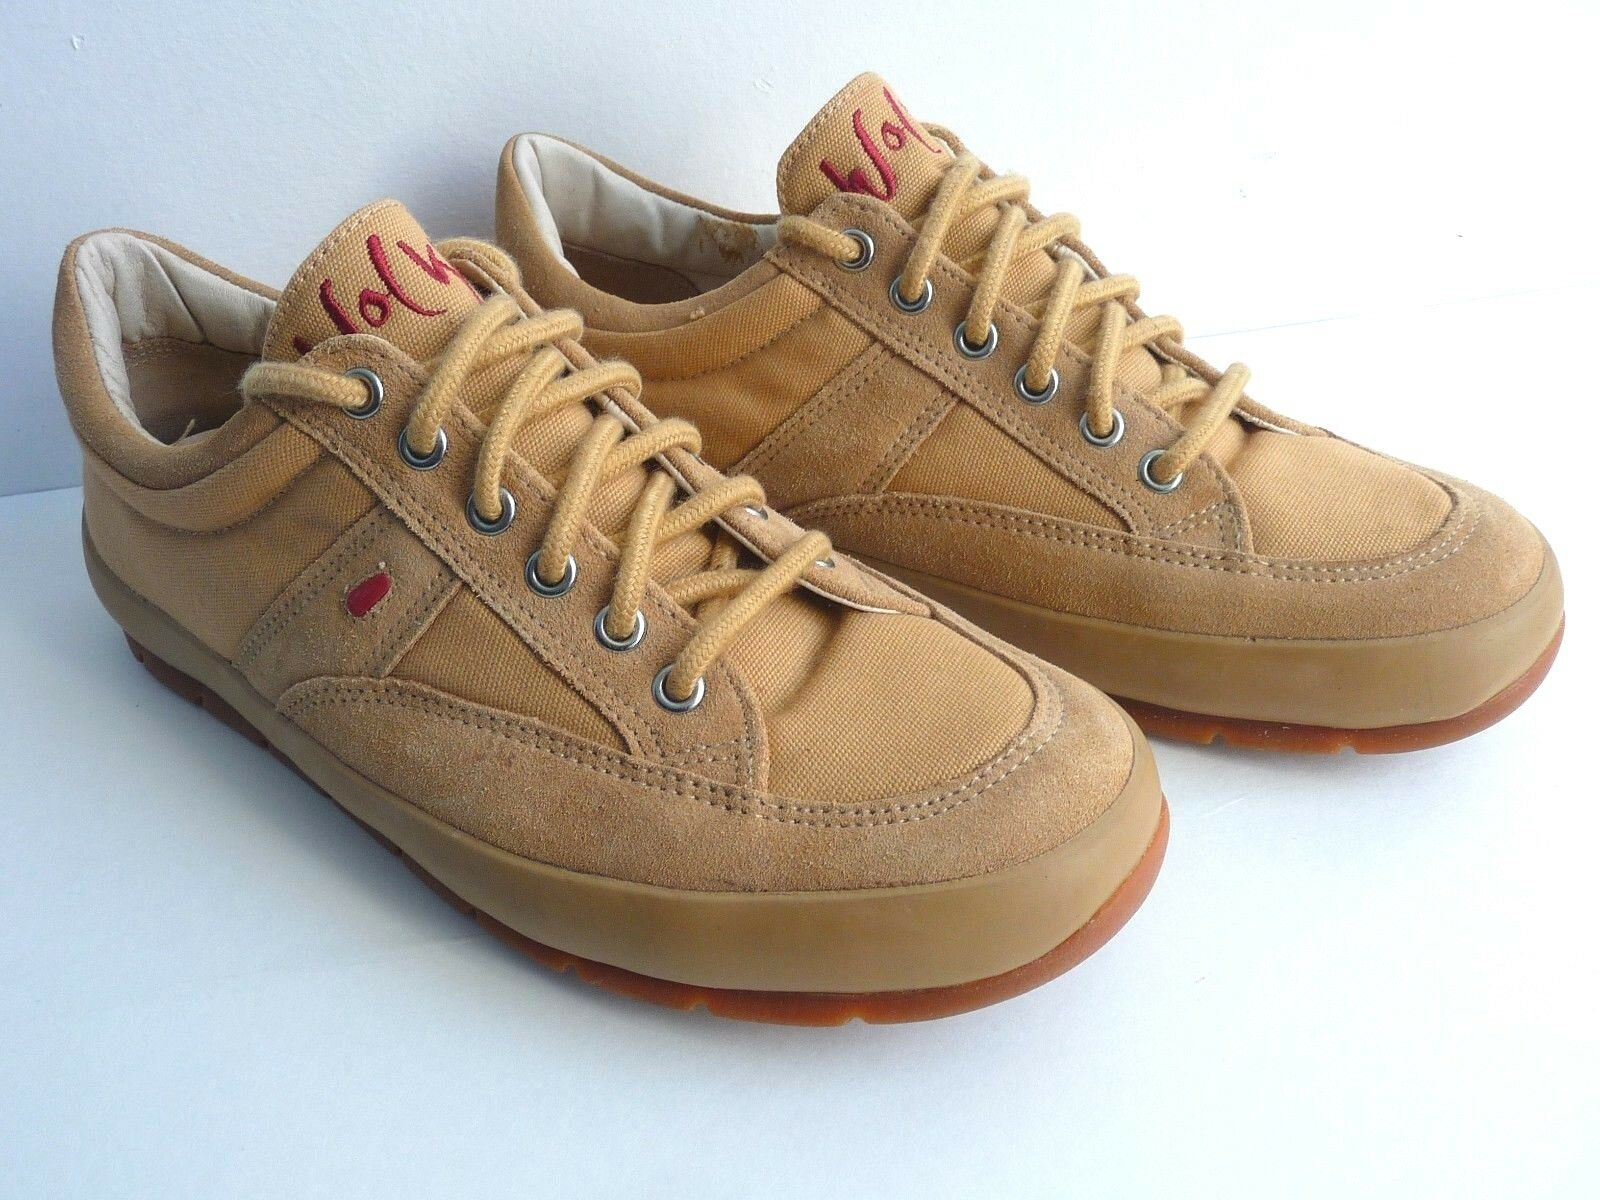 Wolky Suede Canvas Tan Walking Sneaker shoes ART 227 Size EUR 41 US 9.5  Women's